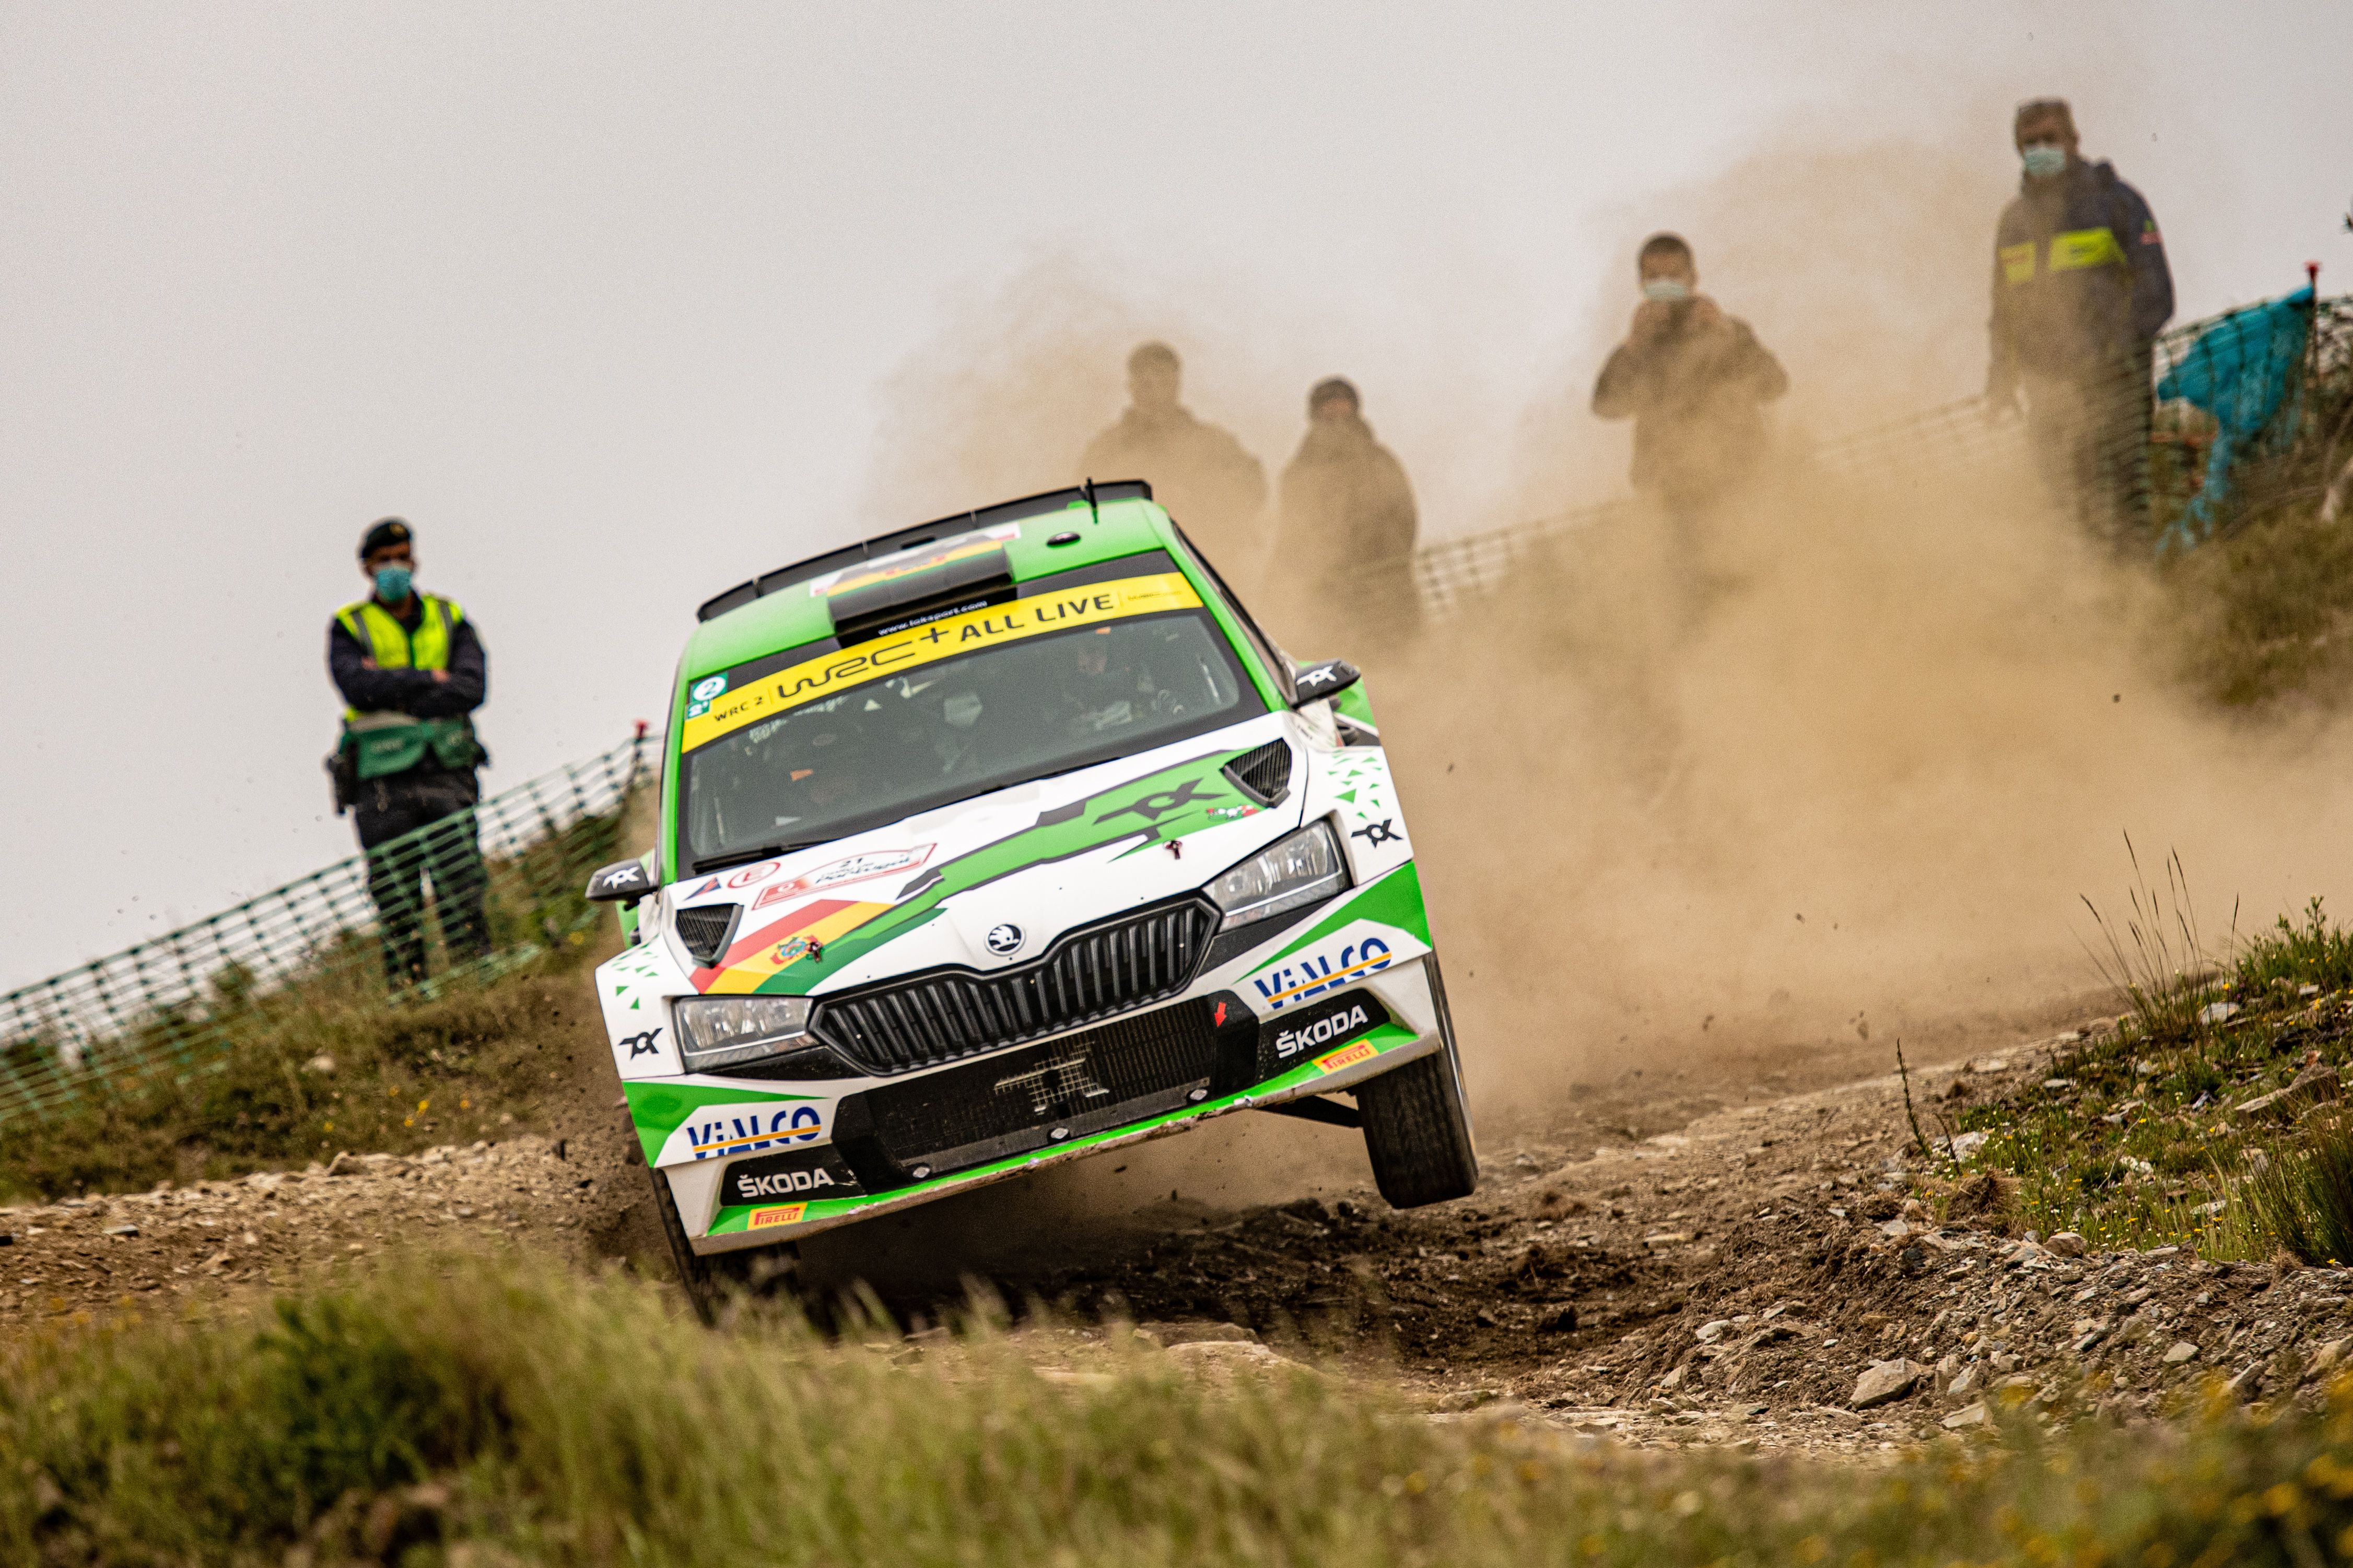 Rally Italia Sardegna: SKODA crews fight for victories in WRC2 and WRC3 - Image 2